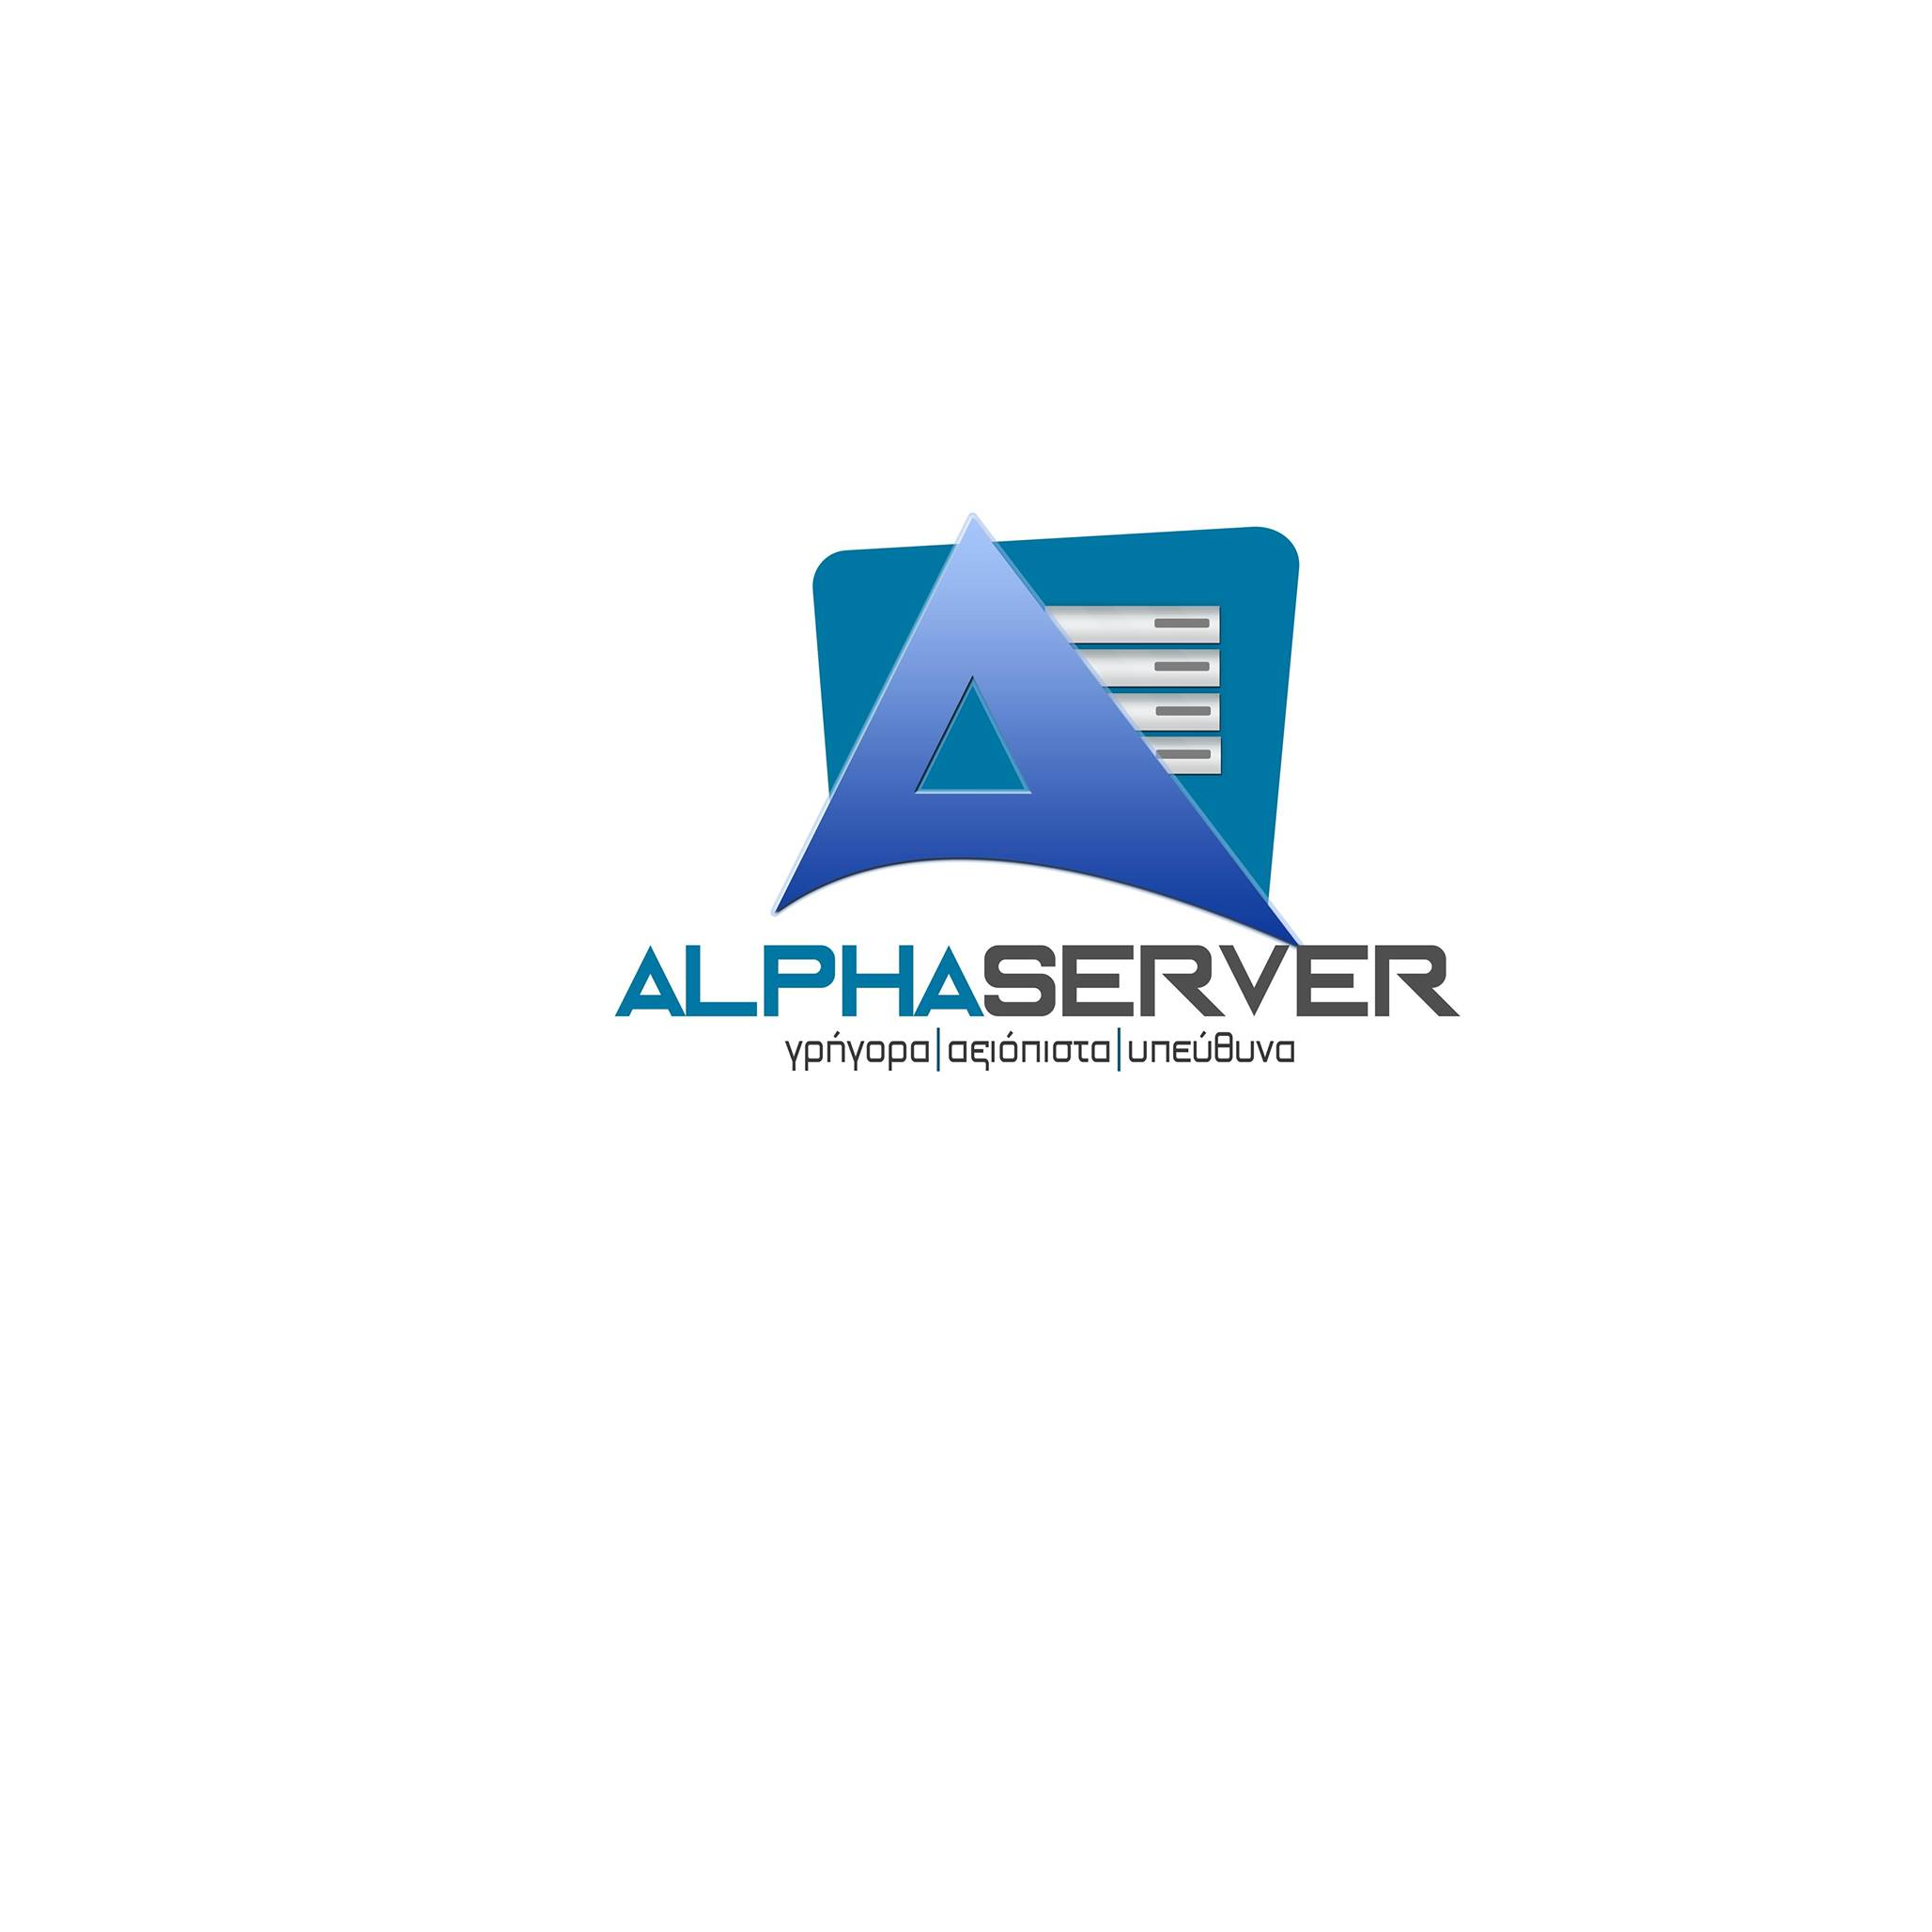 https://everest.alphaserver.gr:2345